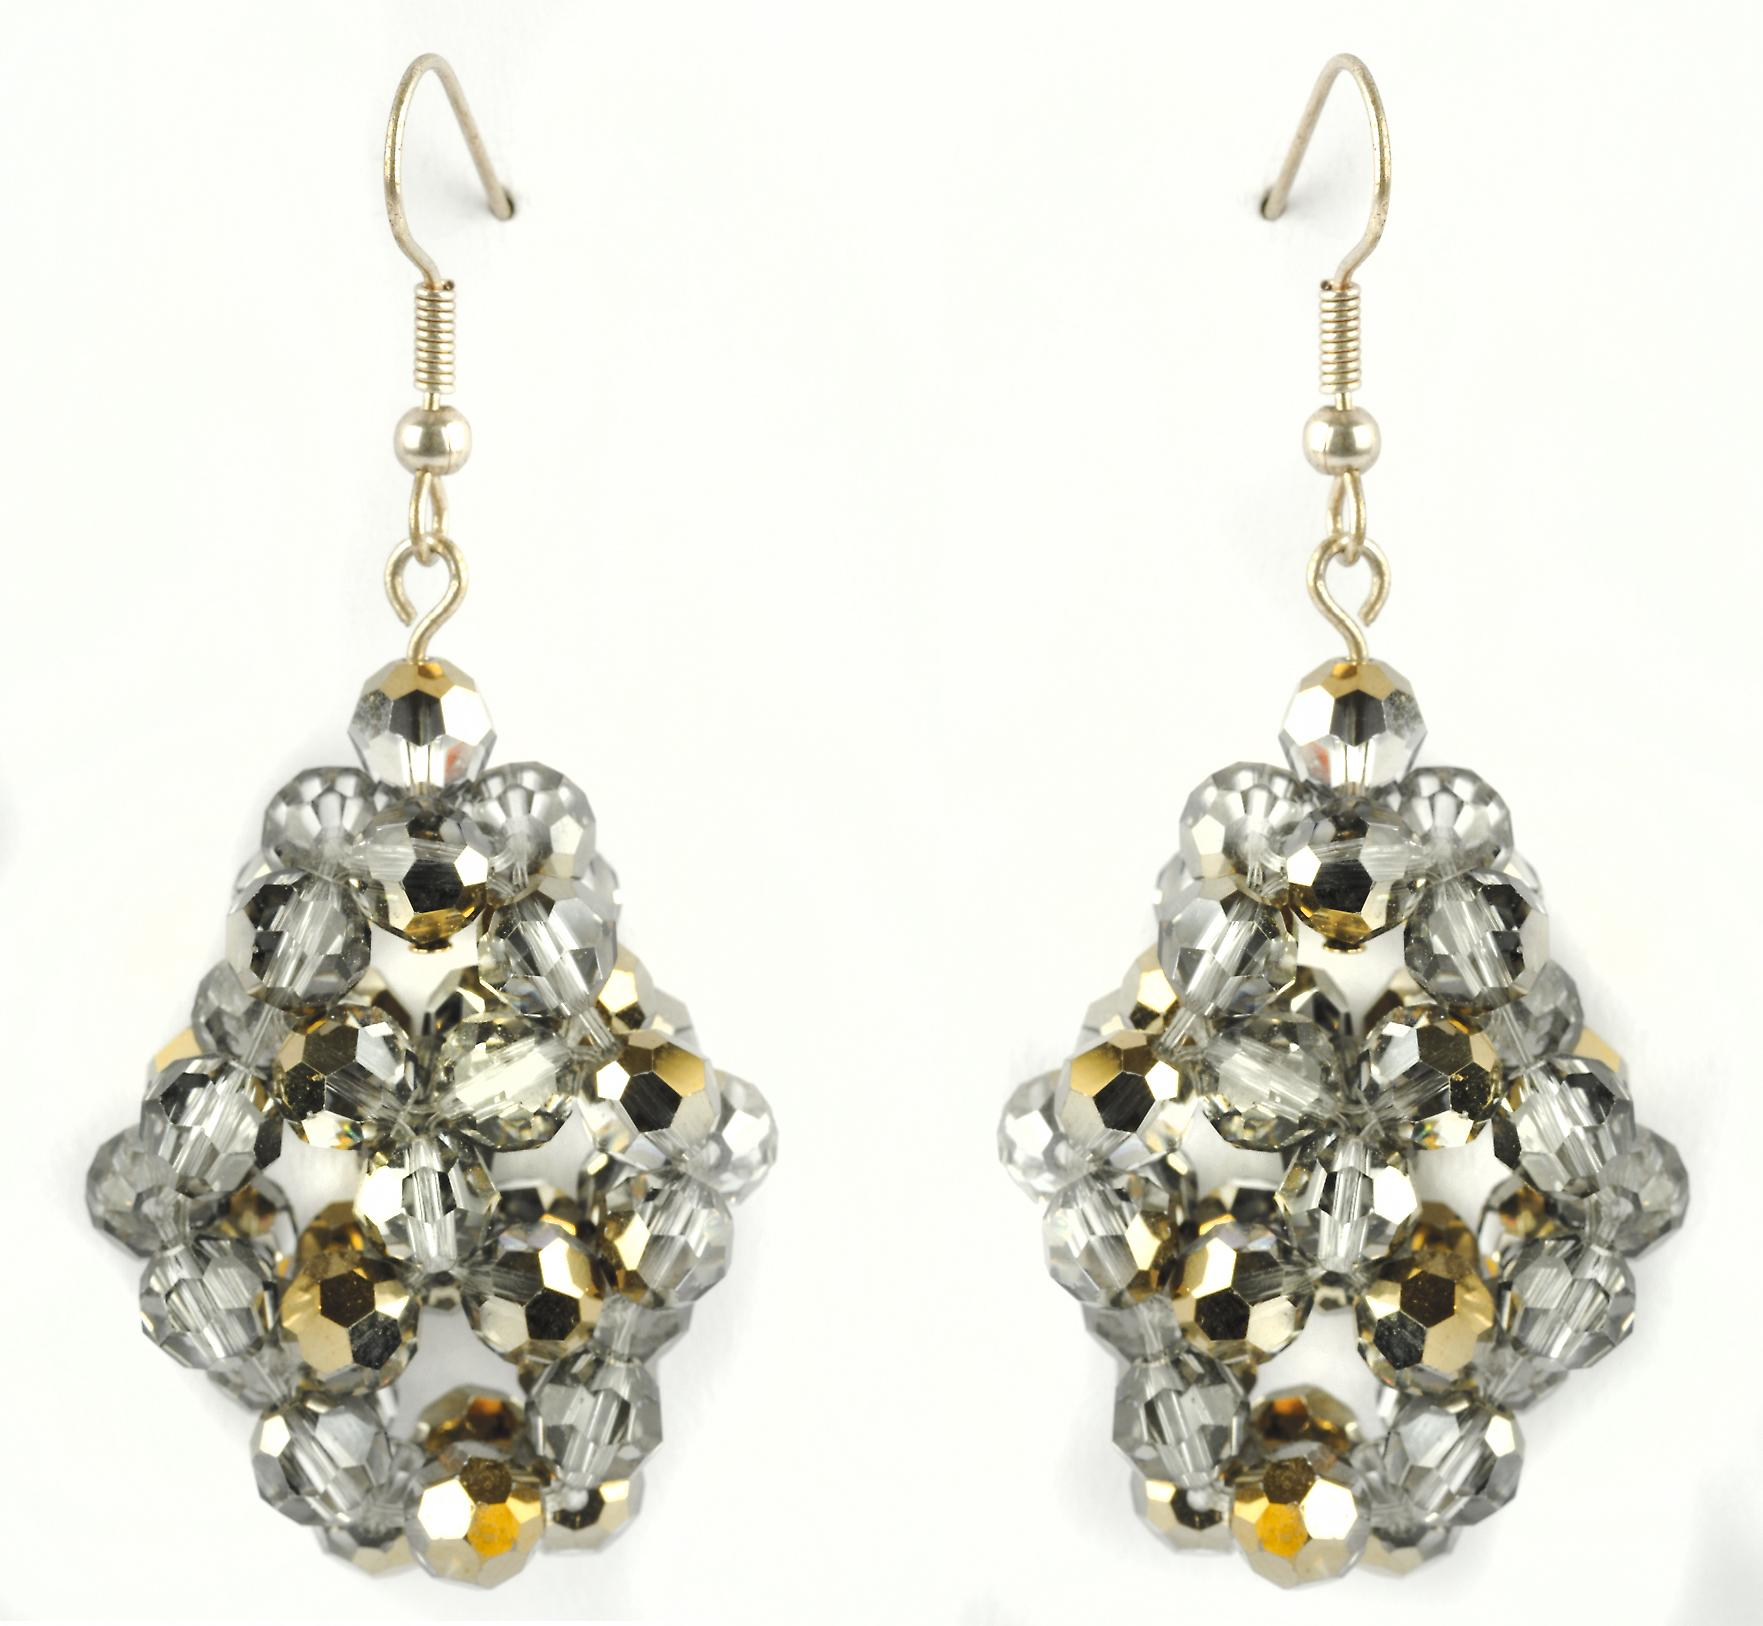 Waooh - Fashion Jewellery - WJ0740 - D'Oreille earrings with Swarovski Rhinestones Color Silver & Gold - Silver color Frame